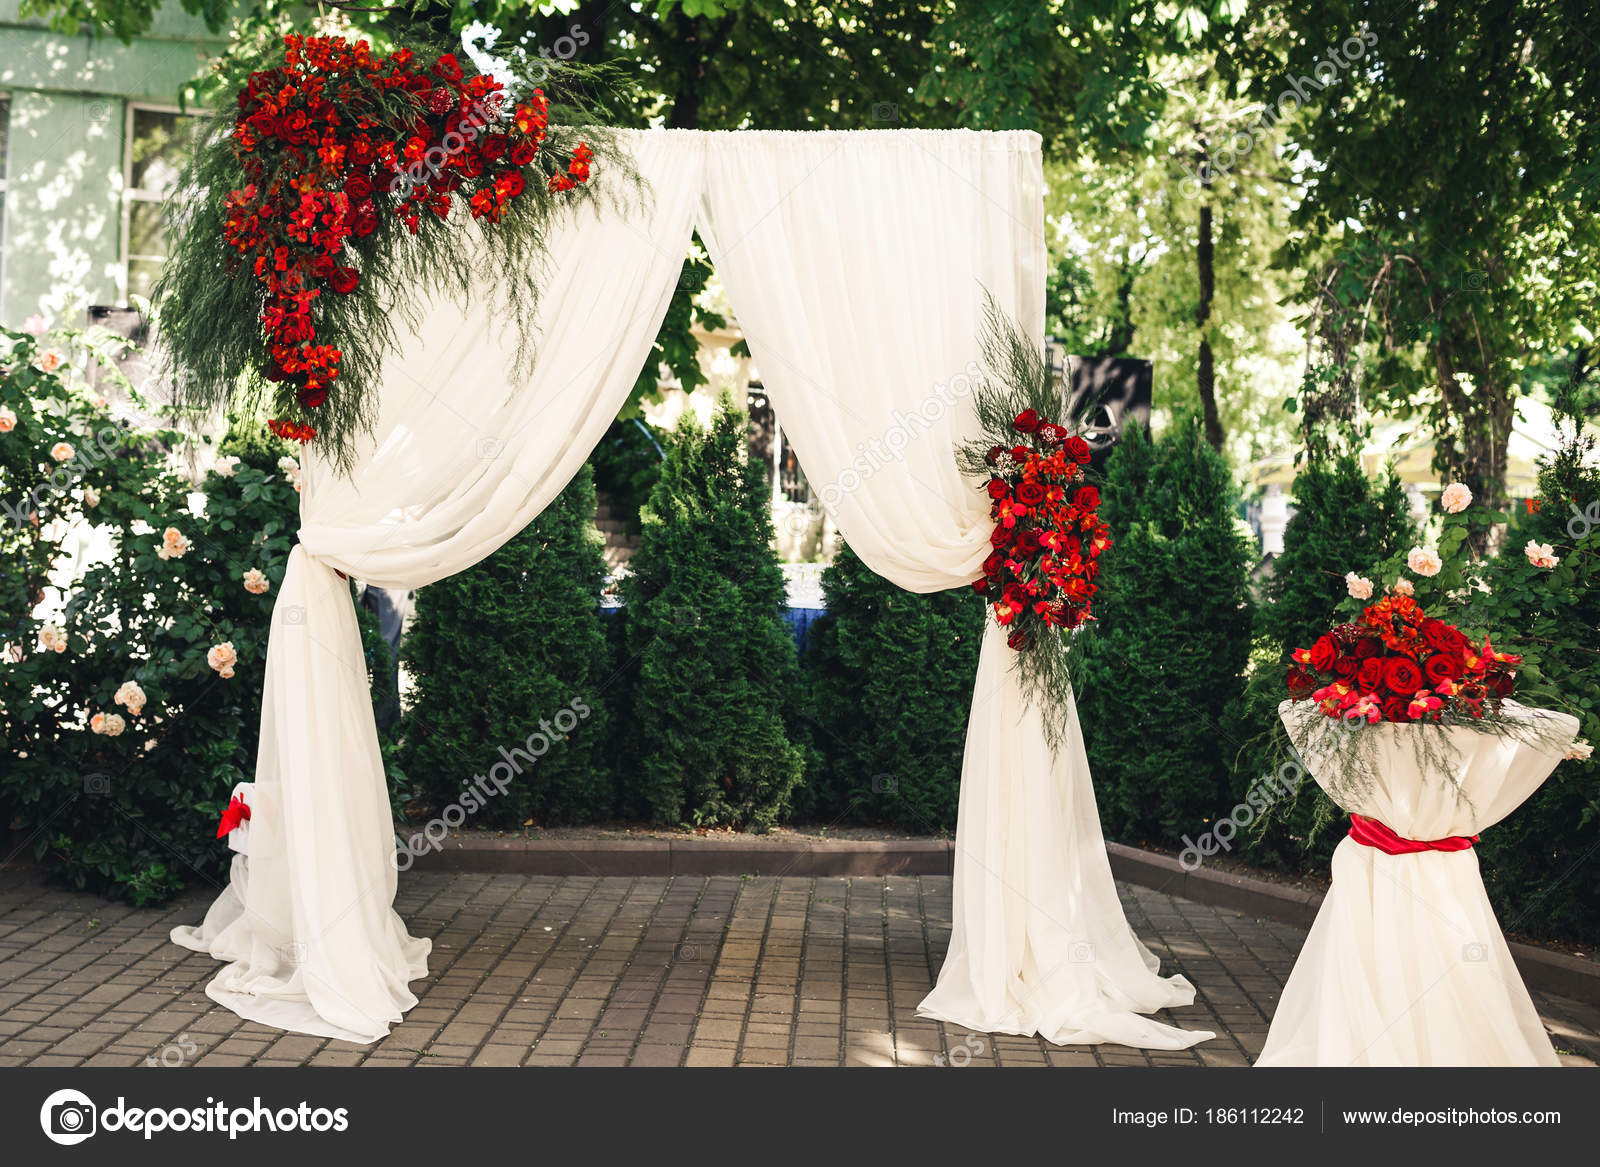 Wedding arch and table decorated with flowers stock photo wedding arch and table decorated with flowers wedding decorations photo by varnavaphoto junglespirit Choice Image